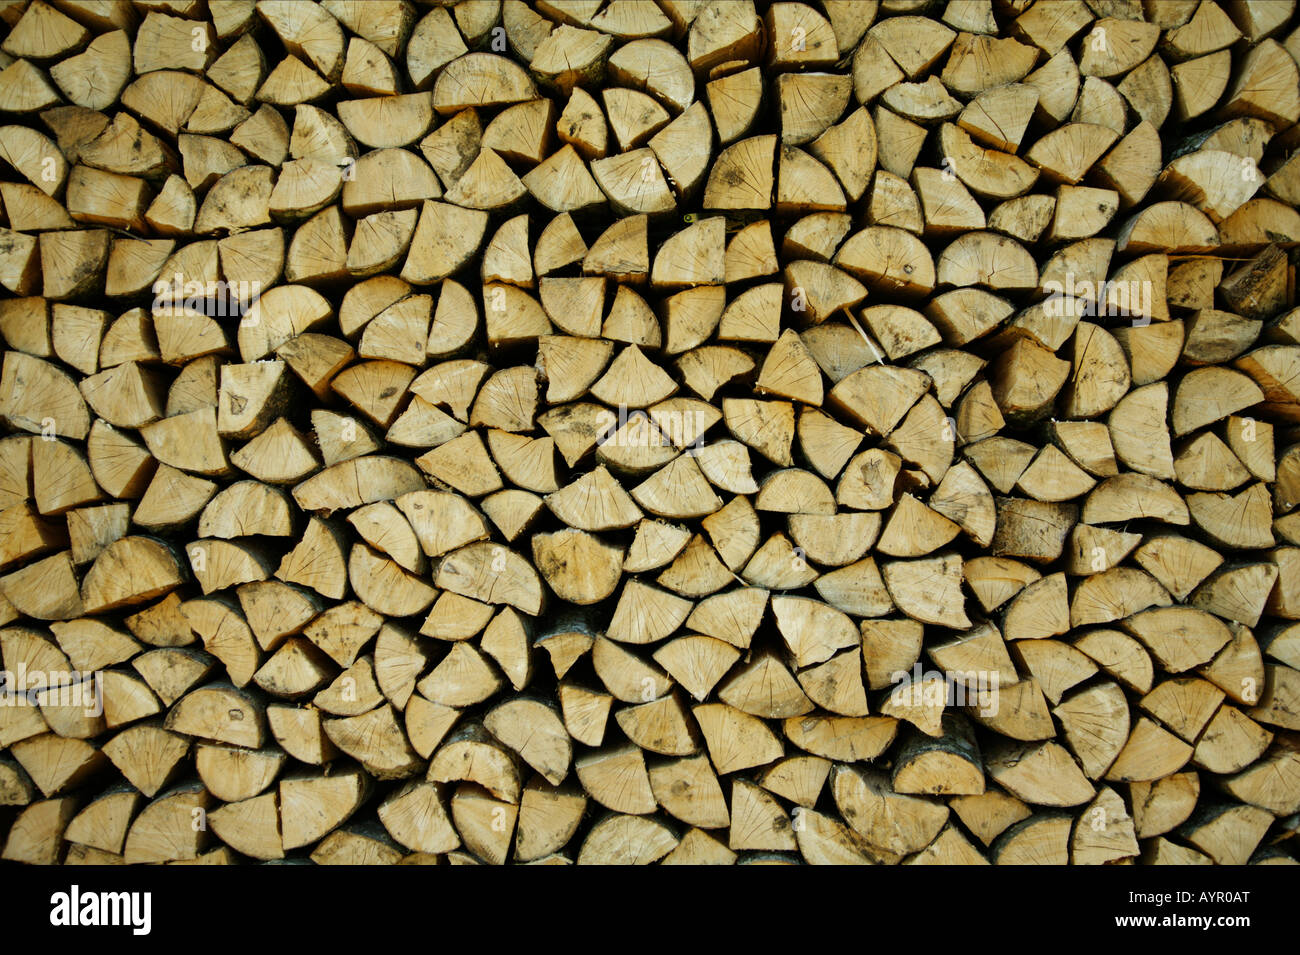 Piled up logs - Stock Image